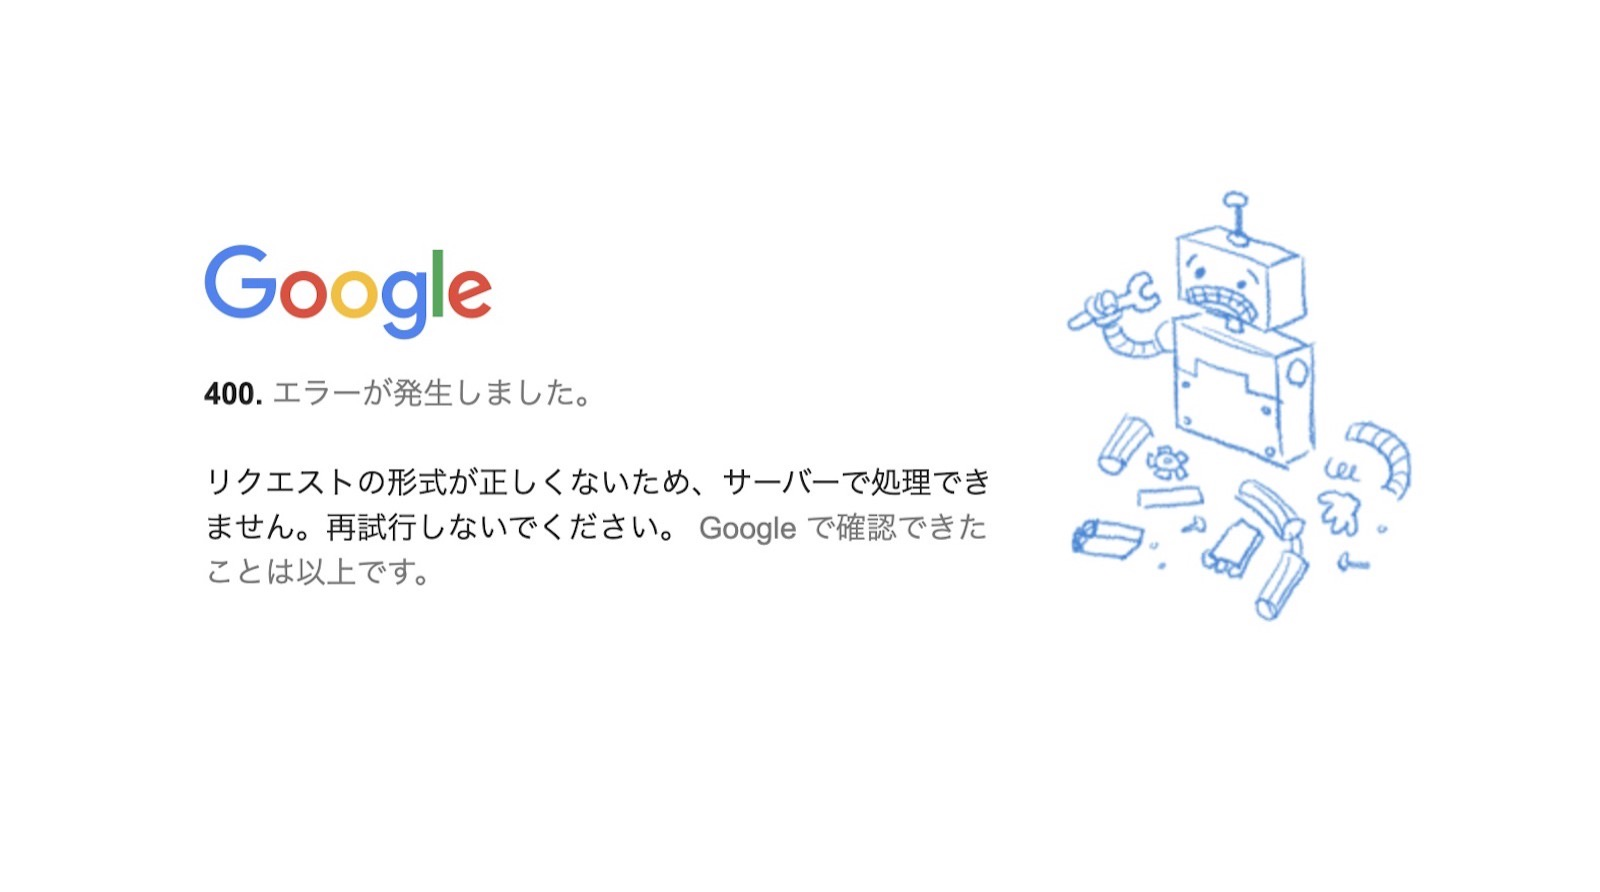 Google server is down